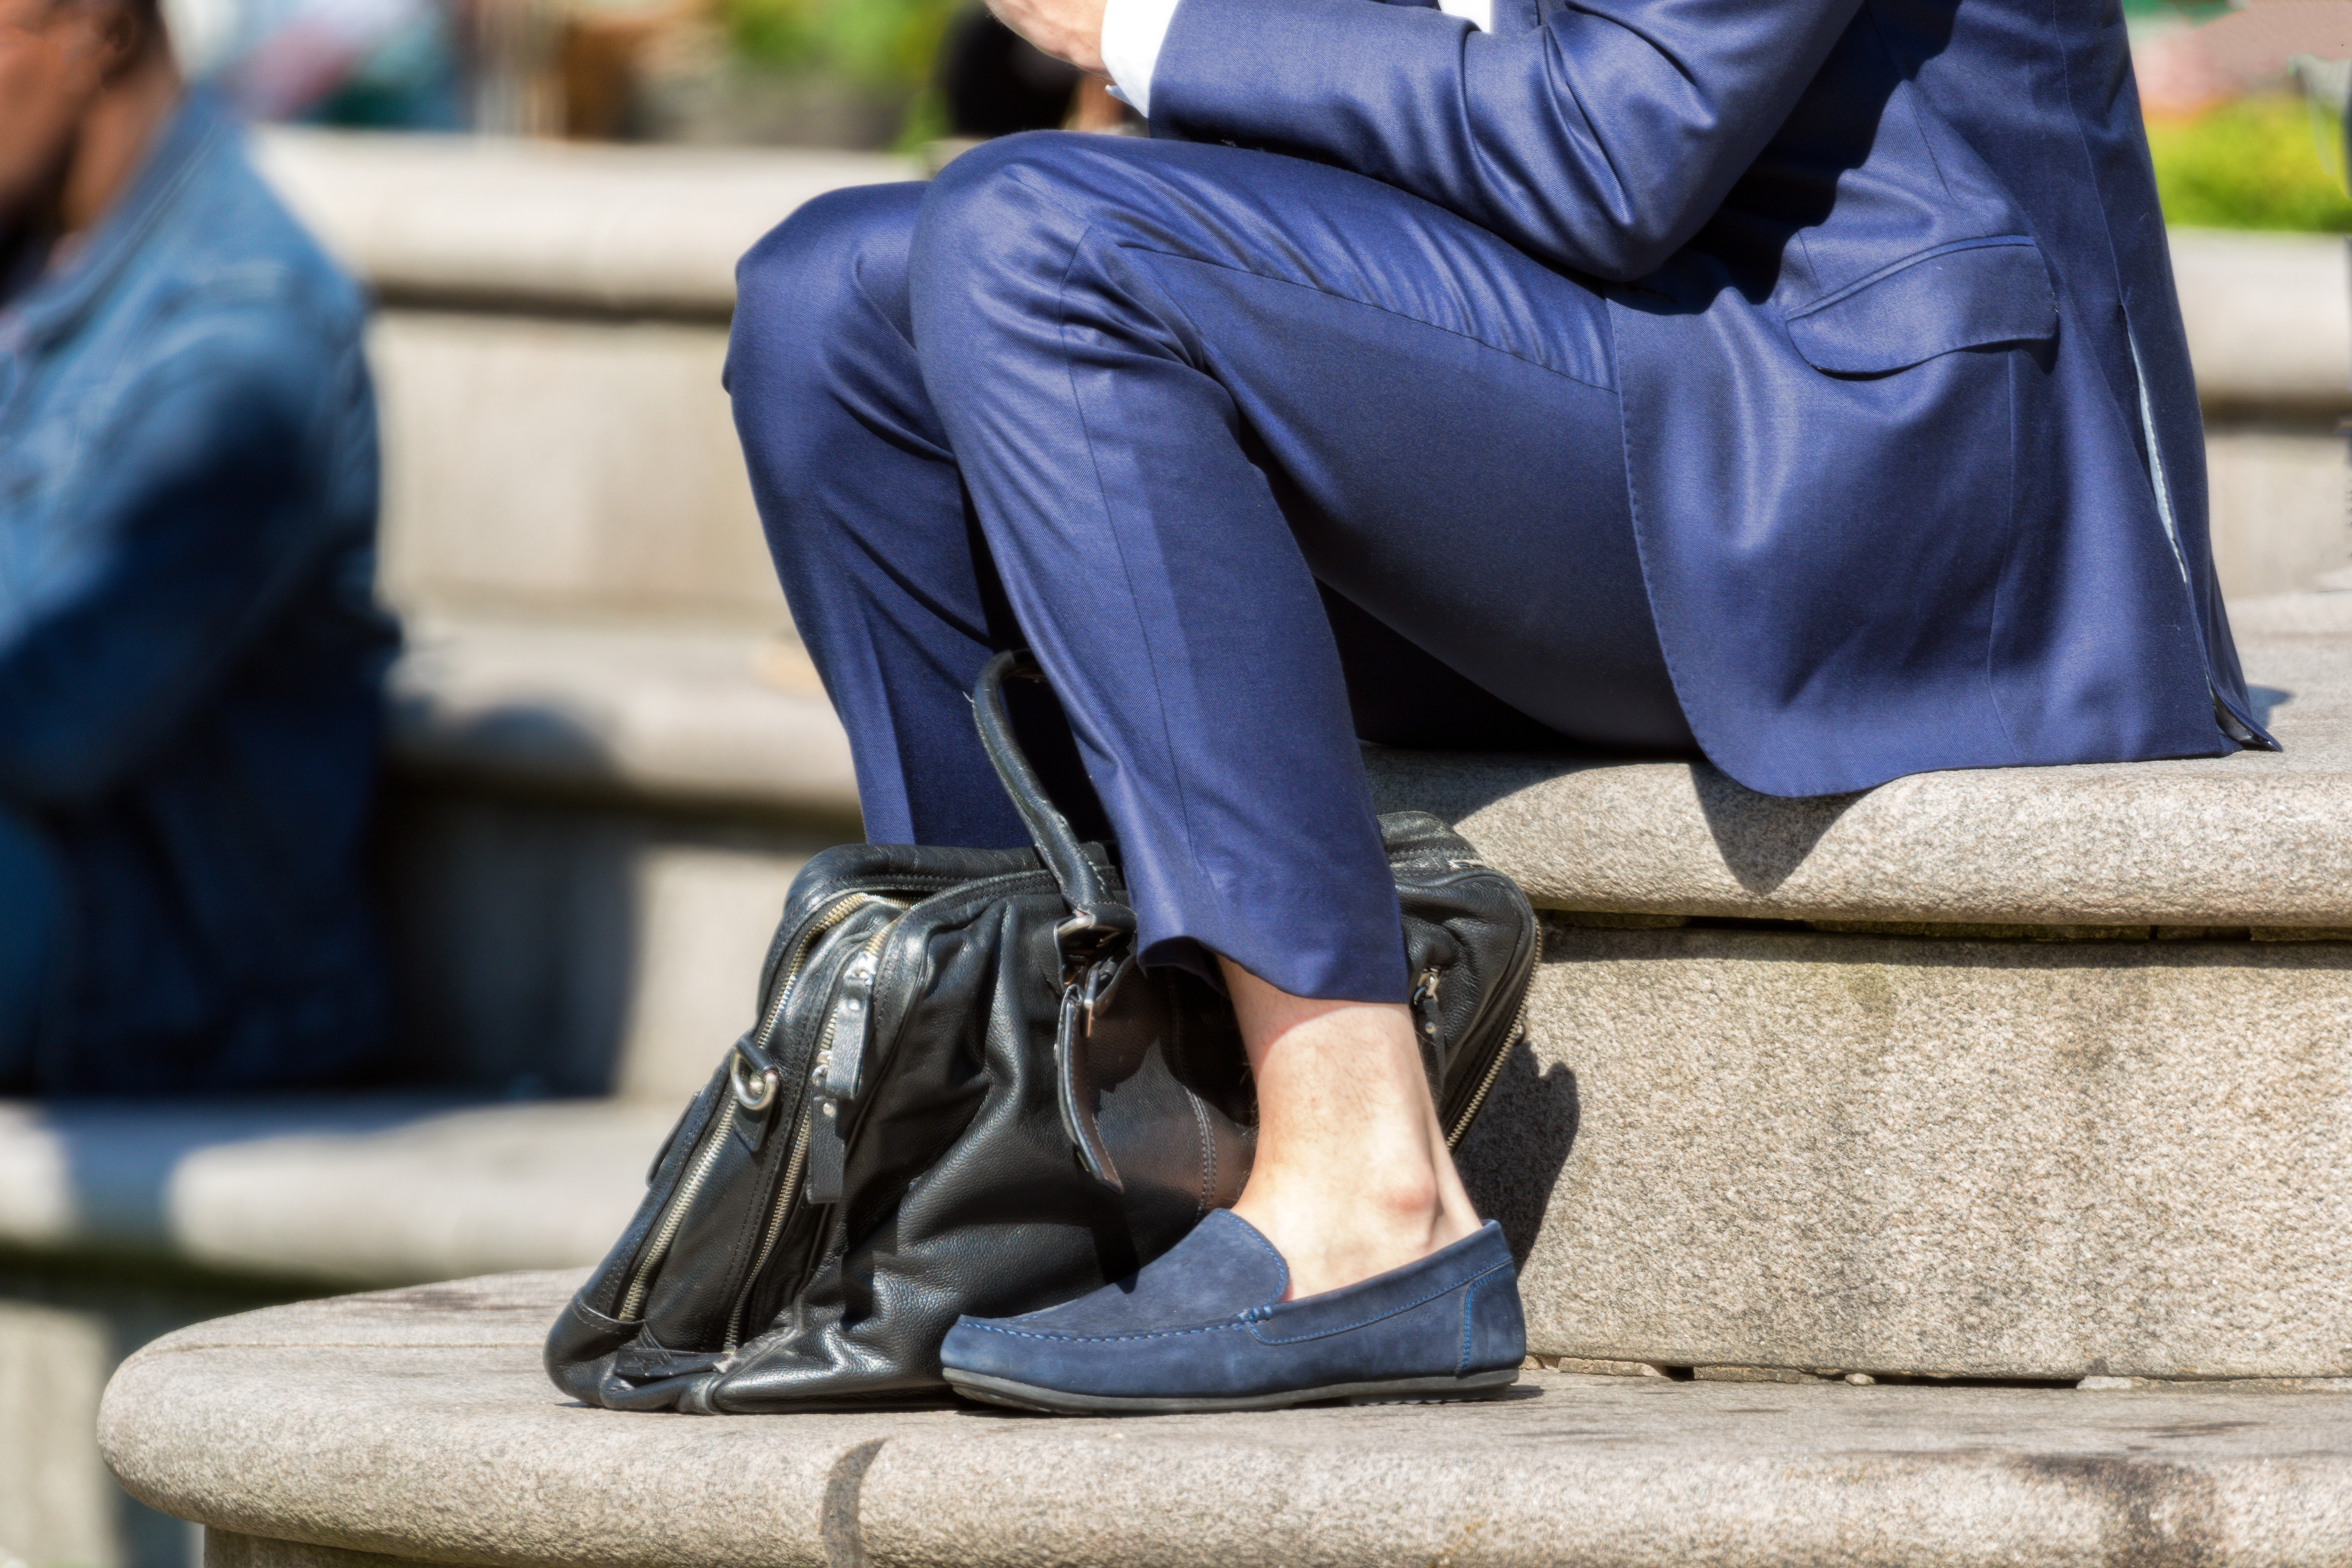 The fashion trend Tom Elliott says doesn't belong in the workplace